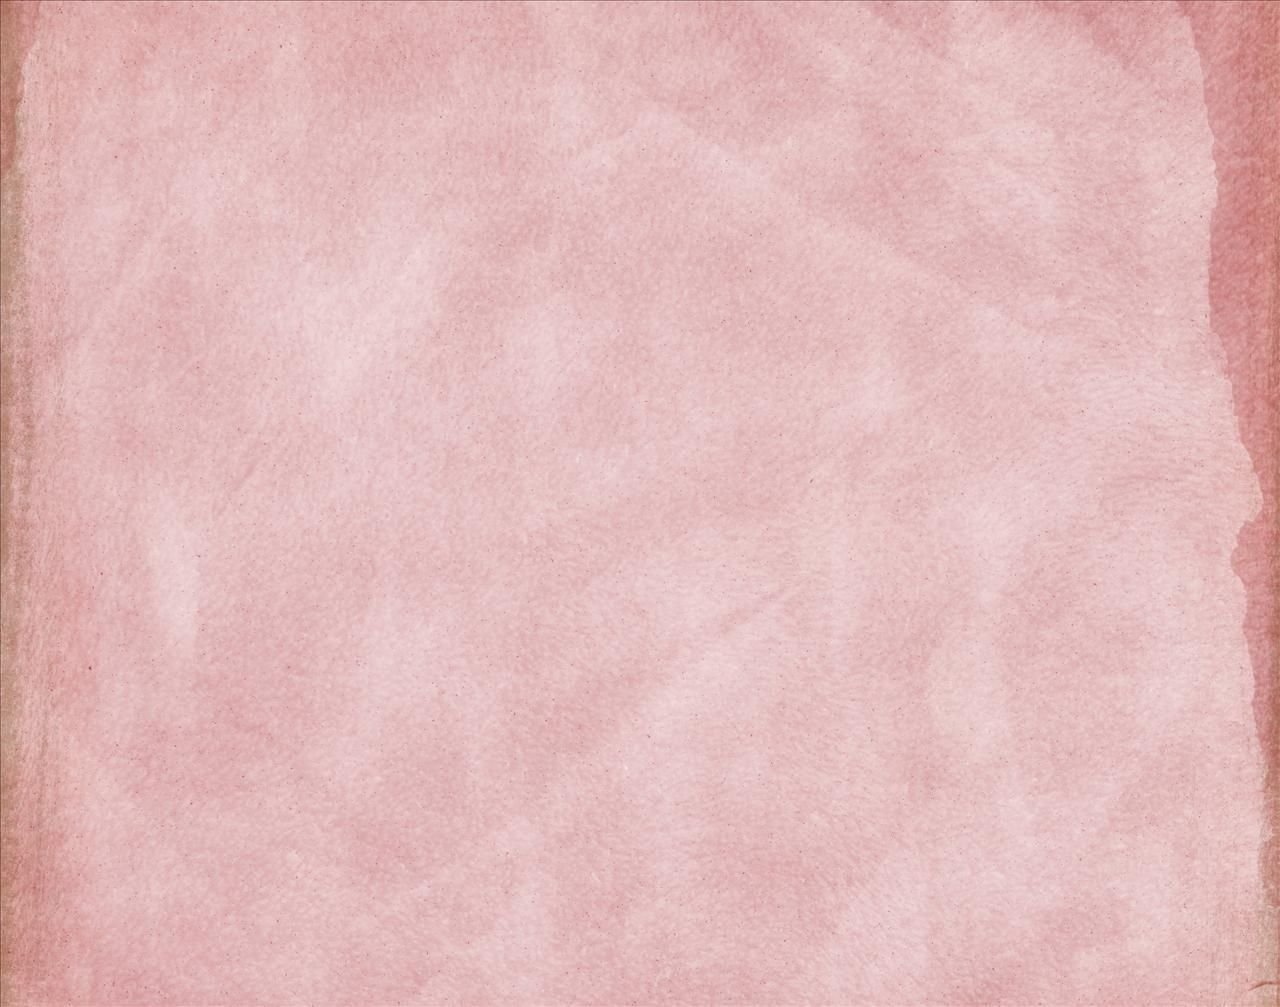 Pink Vintage Background Use This Background In Your Picaboo Photo Book Background Vintage Vintage Pink Photo Book